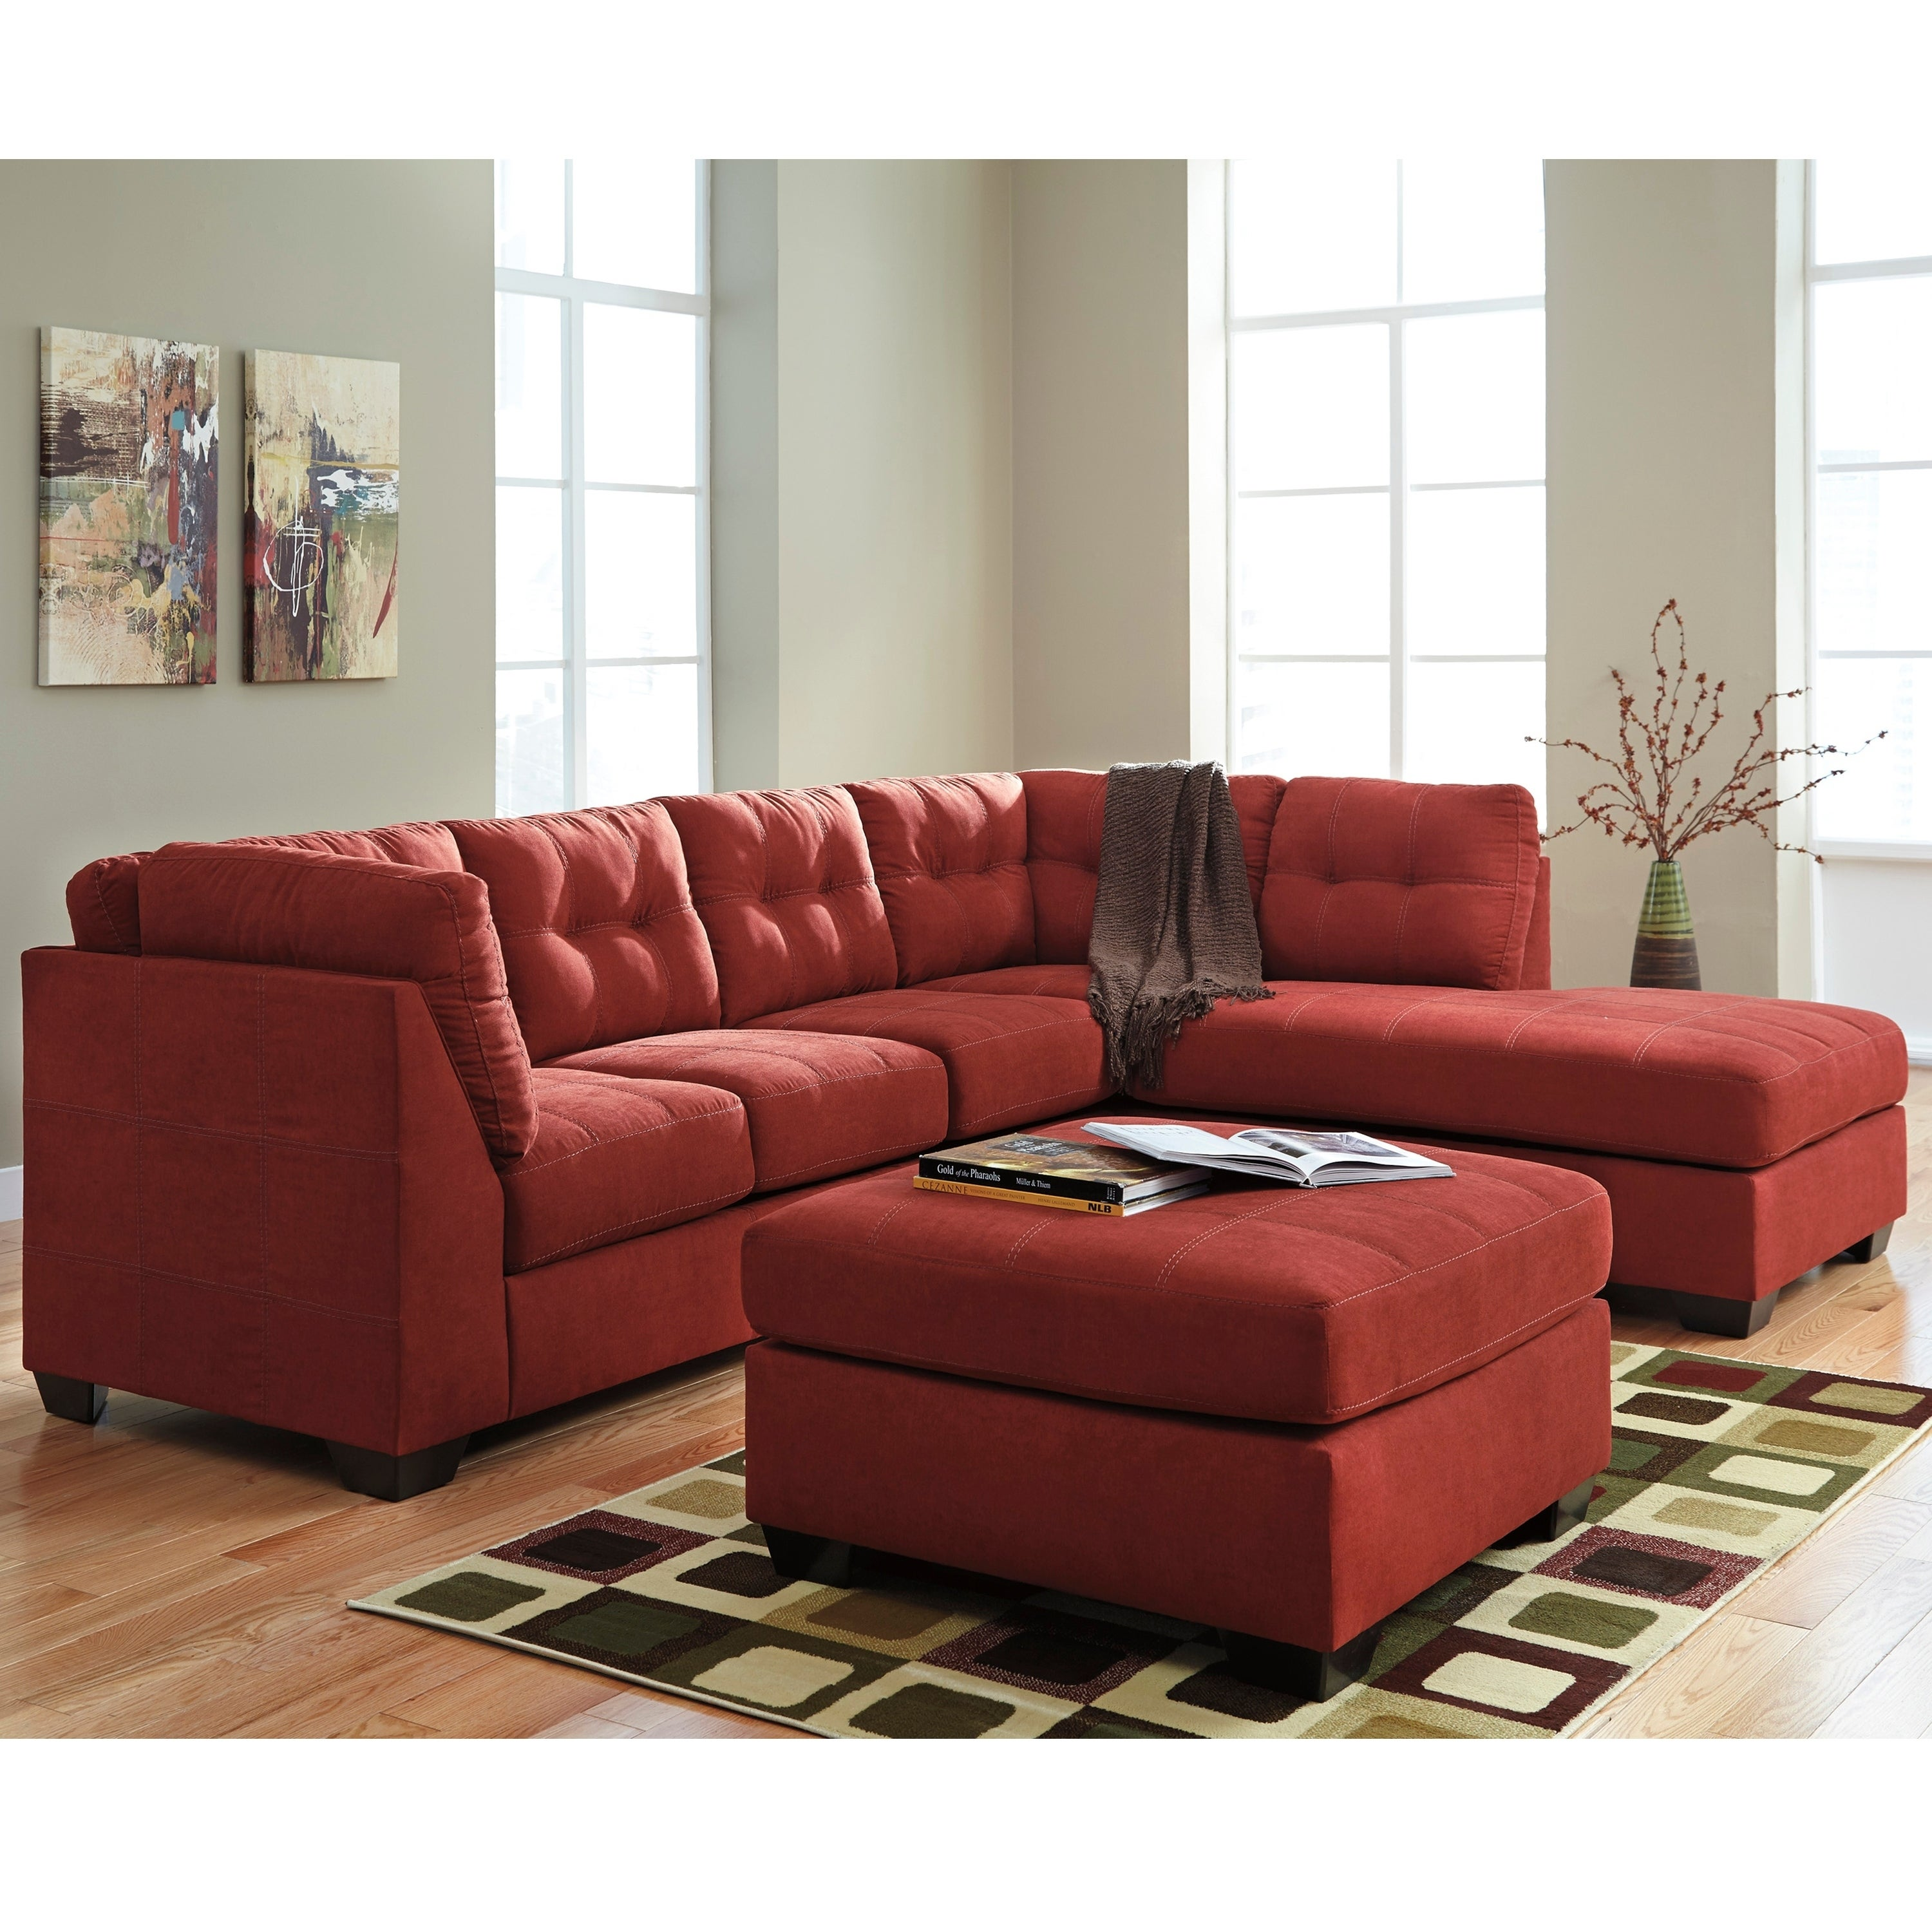 blue design couch full red sofas microfiberal amazing with of size sofa chaise huge chaisemicrofiber brown sectional microfiber